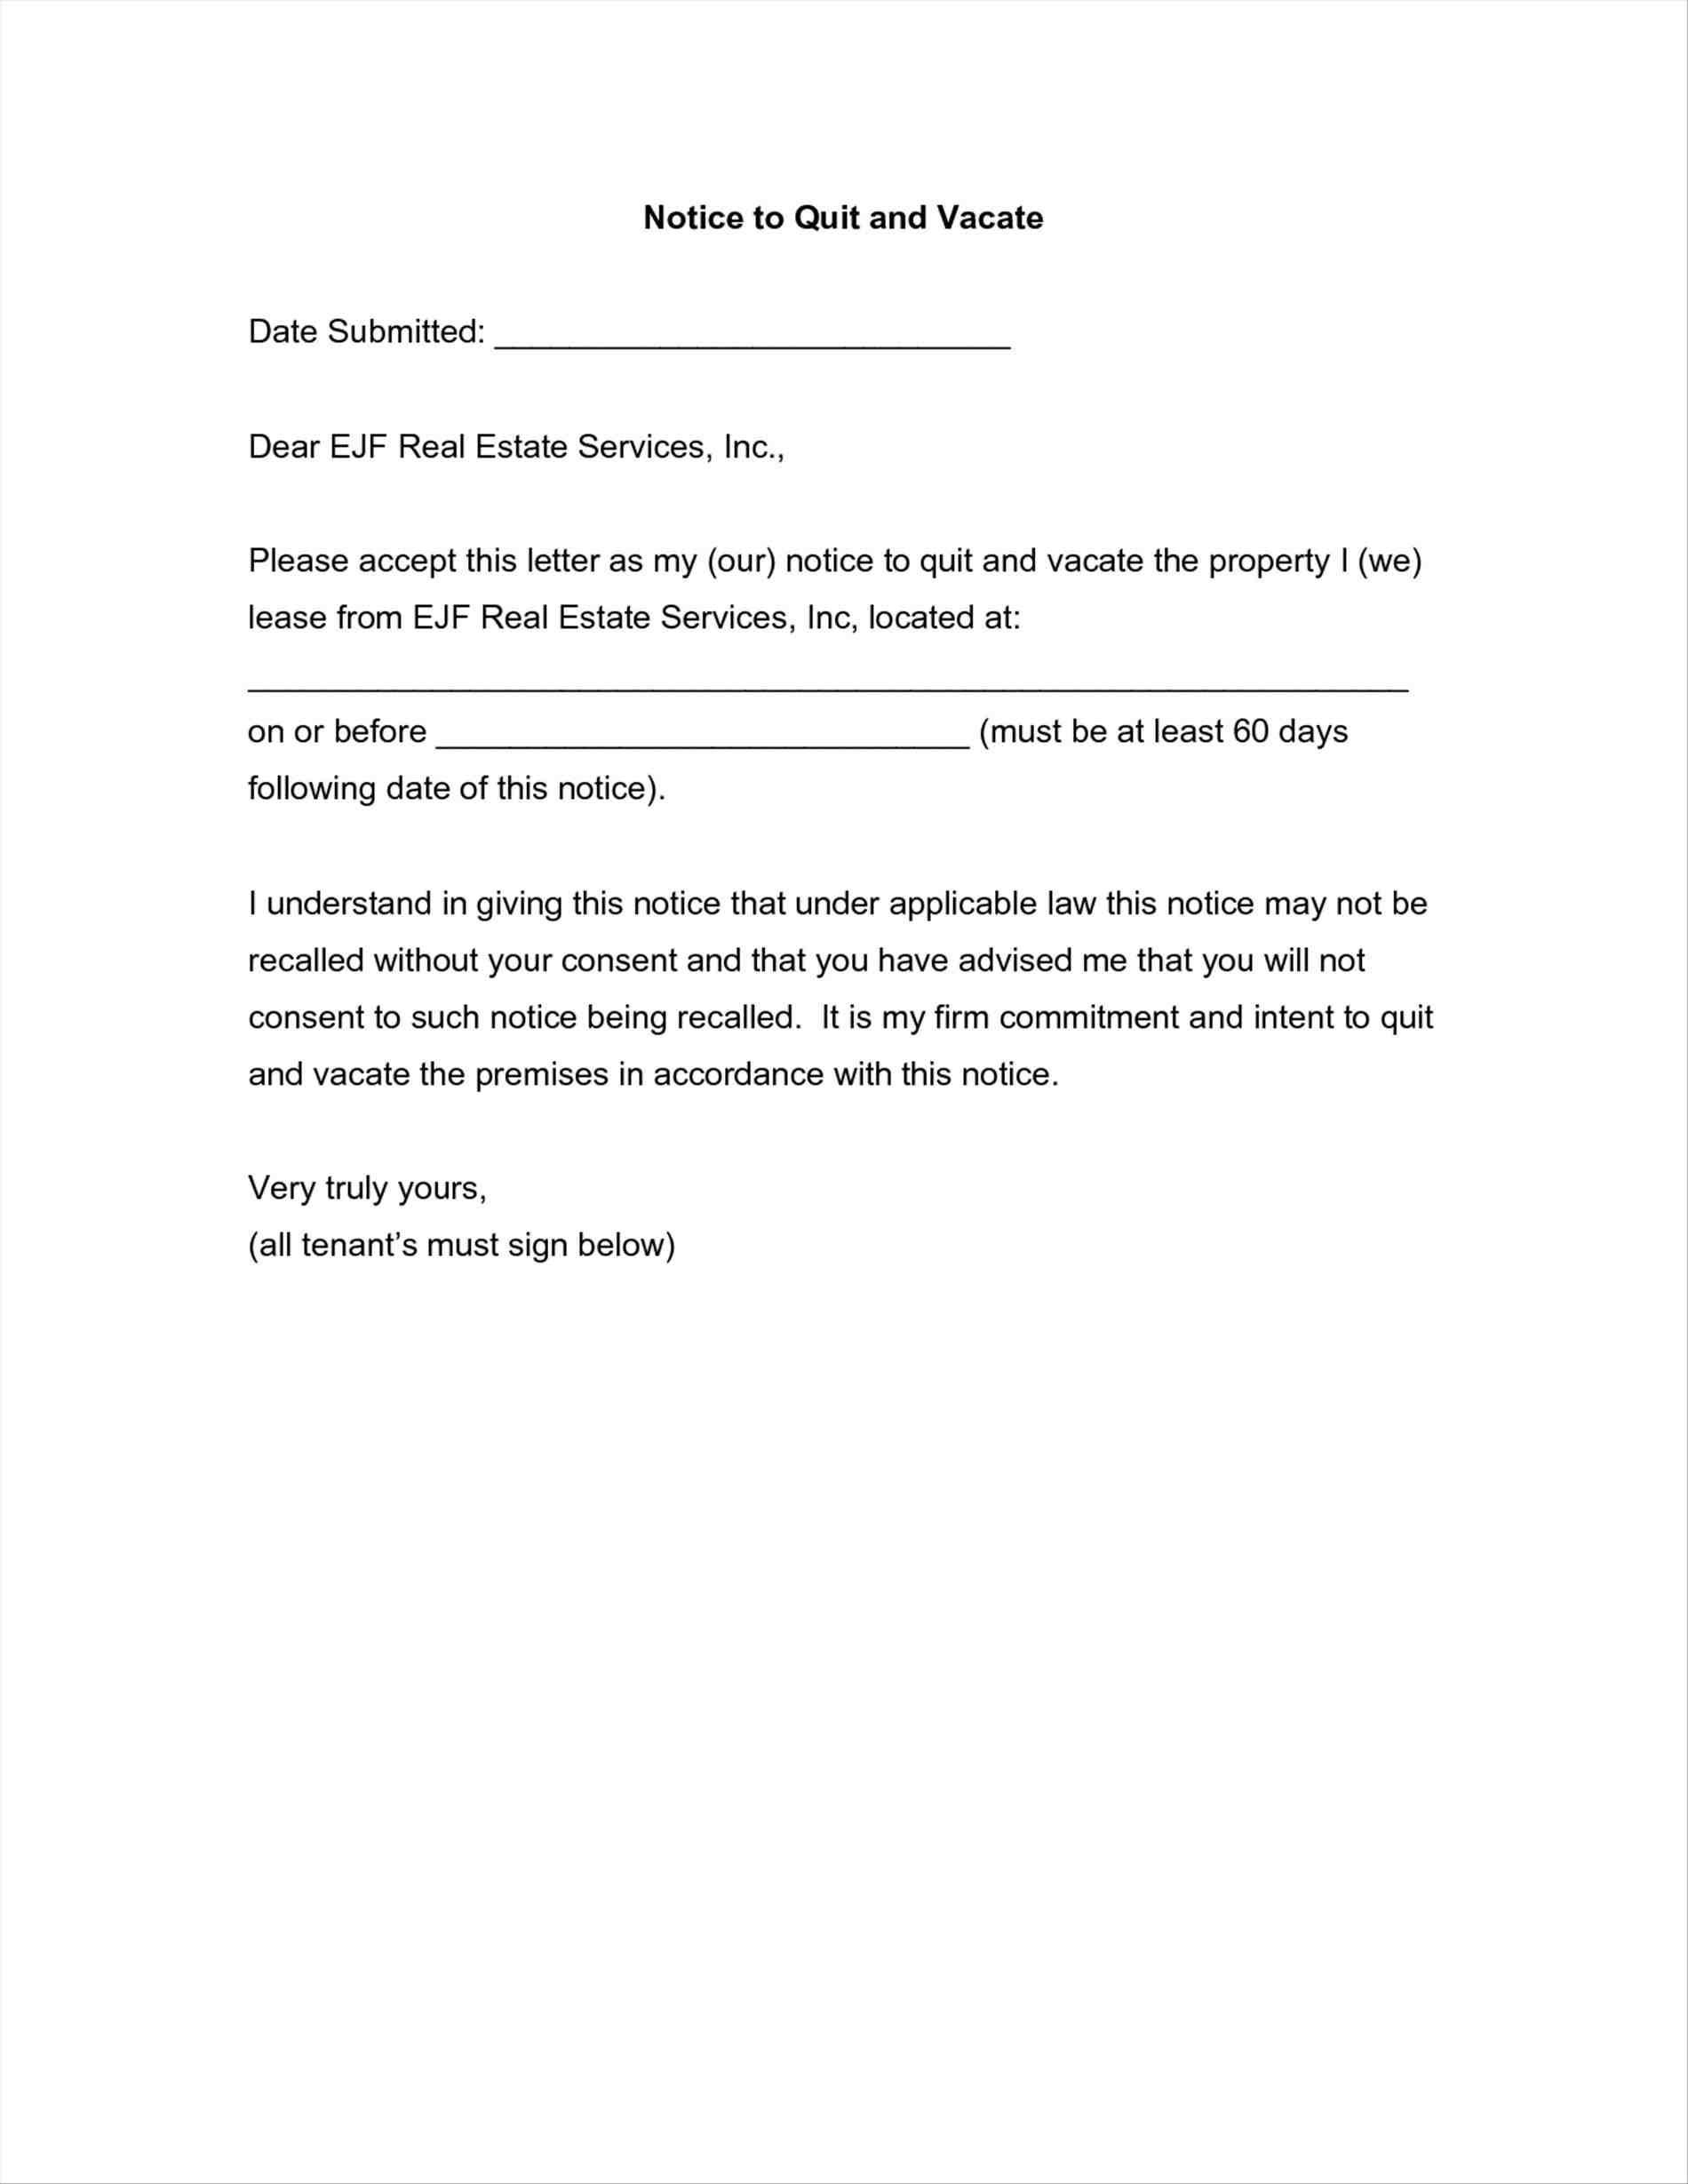 Property Inspection Letter to Tenant Template - 60 Day Notice Apartment Template